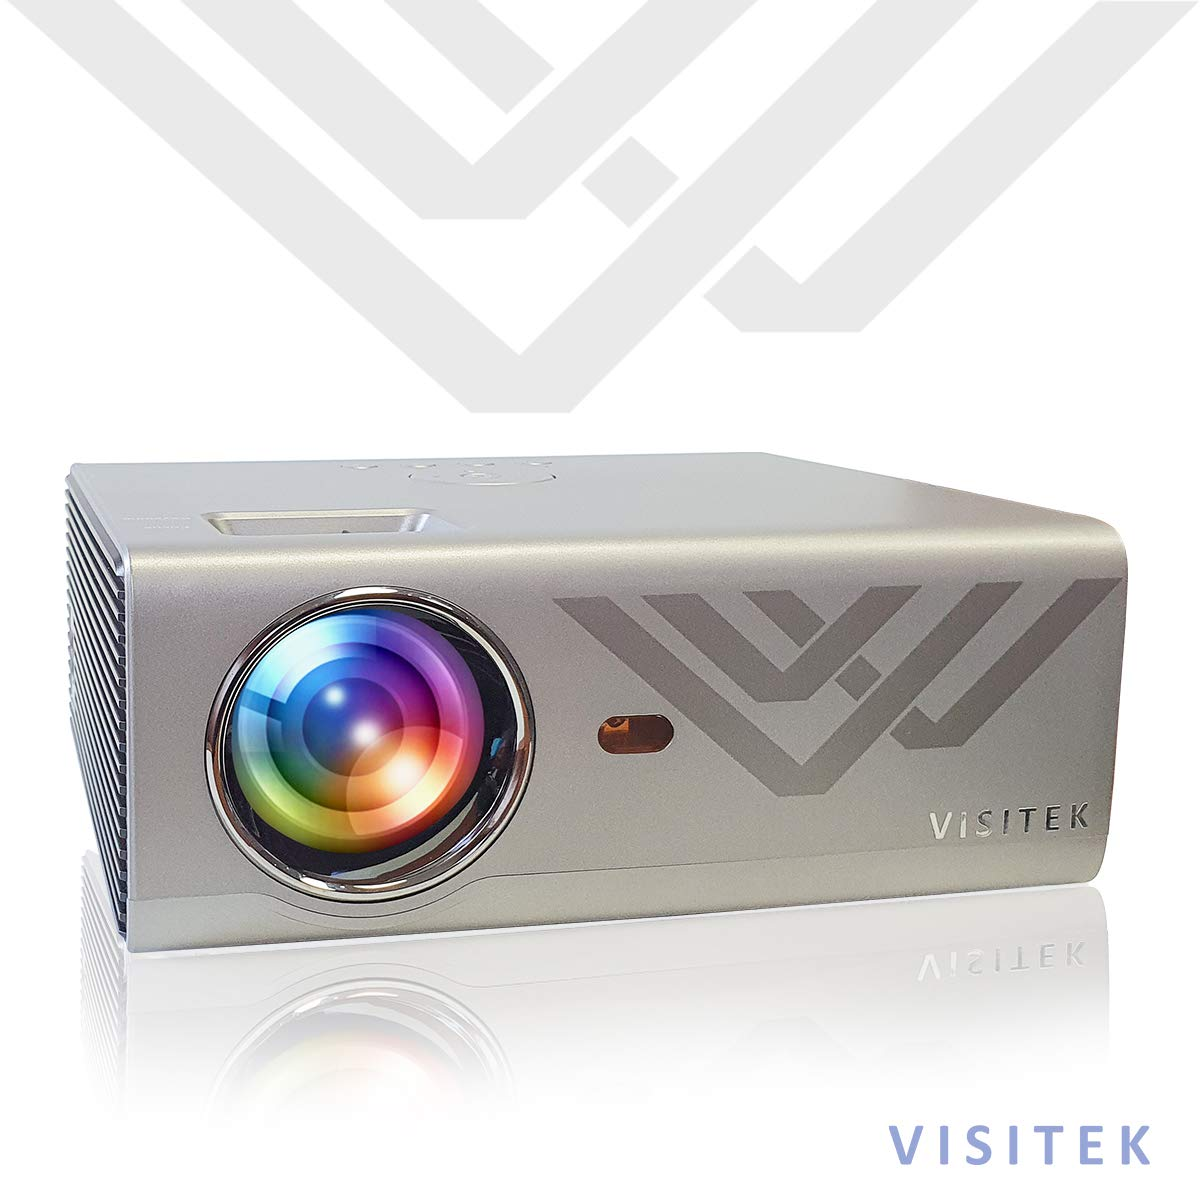 Visitek V3 Standard HD Projector review